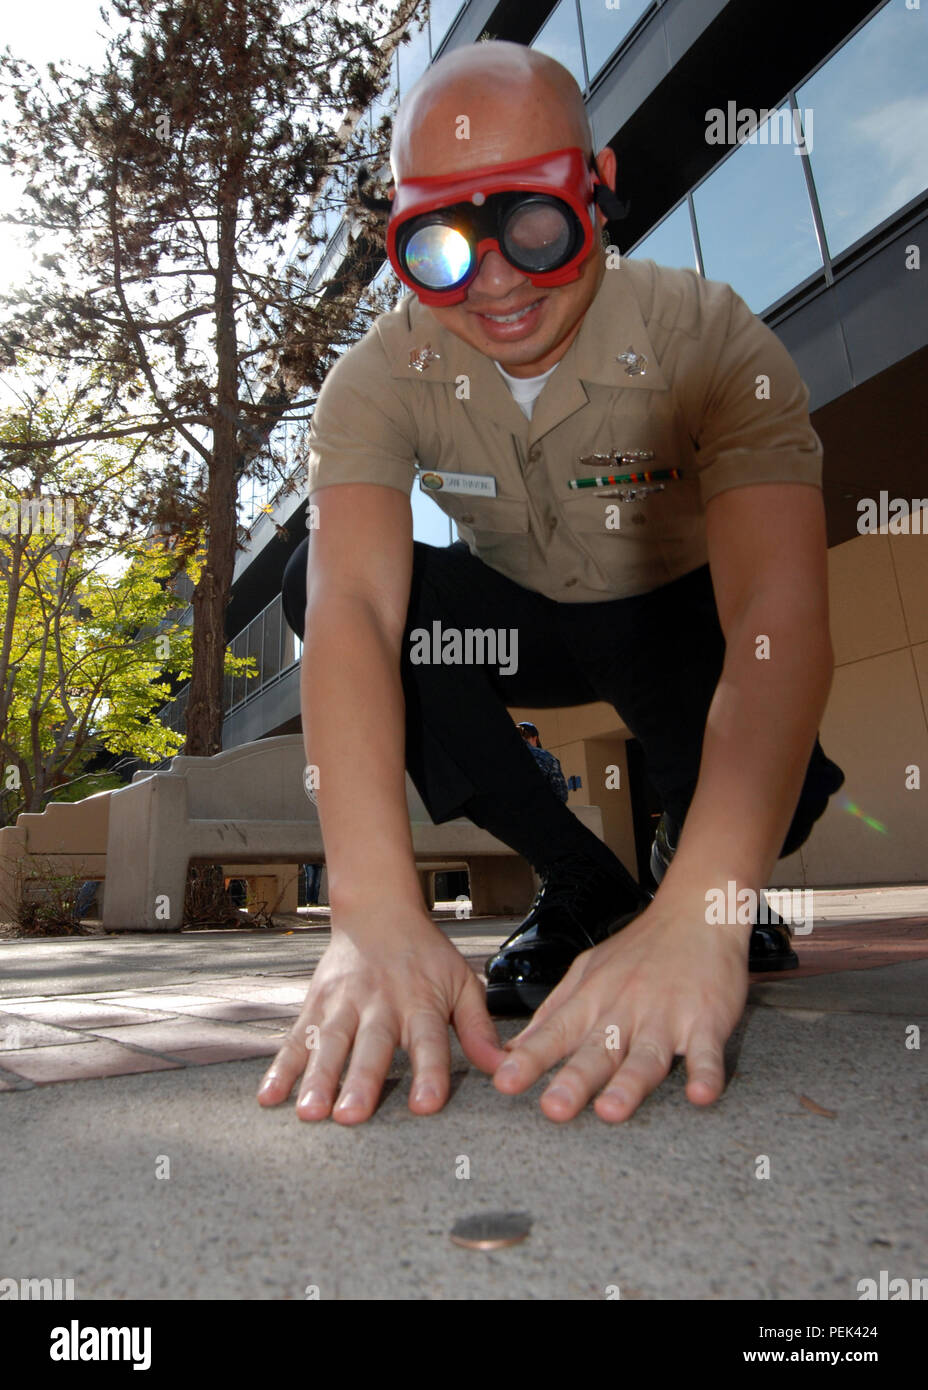 151210-N-BB534-002 SAN DIEGO (Dec. 10, 2015) Hospital Corpsman 1st Class Soutsakhone Sanethavong attempts to pick up a quarter while wearing vision impairment goggles, simulating a blood alcohol level of .08 percent, at Naval Medical Center San Diego(NMCSD) Dec. 10 2015. The NMCSD Drug and Alcohol Program adviser team set up the interactive display for staff and patients as part of the Keep What You've Earned campaign. (U.S. Navy photo by Mass Communication Specialist 1st Class Elizabeth Merriam) - Stock Image